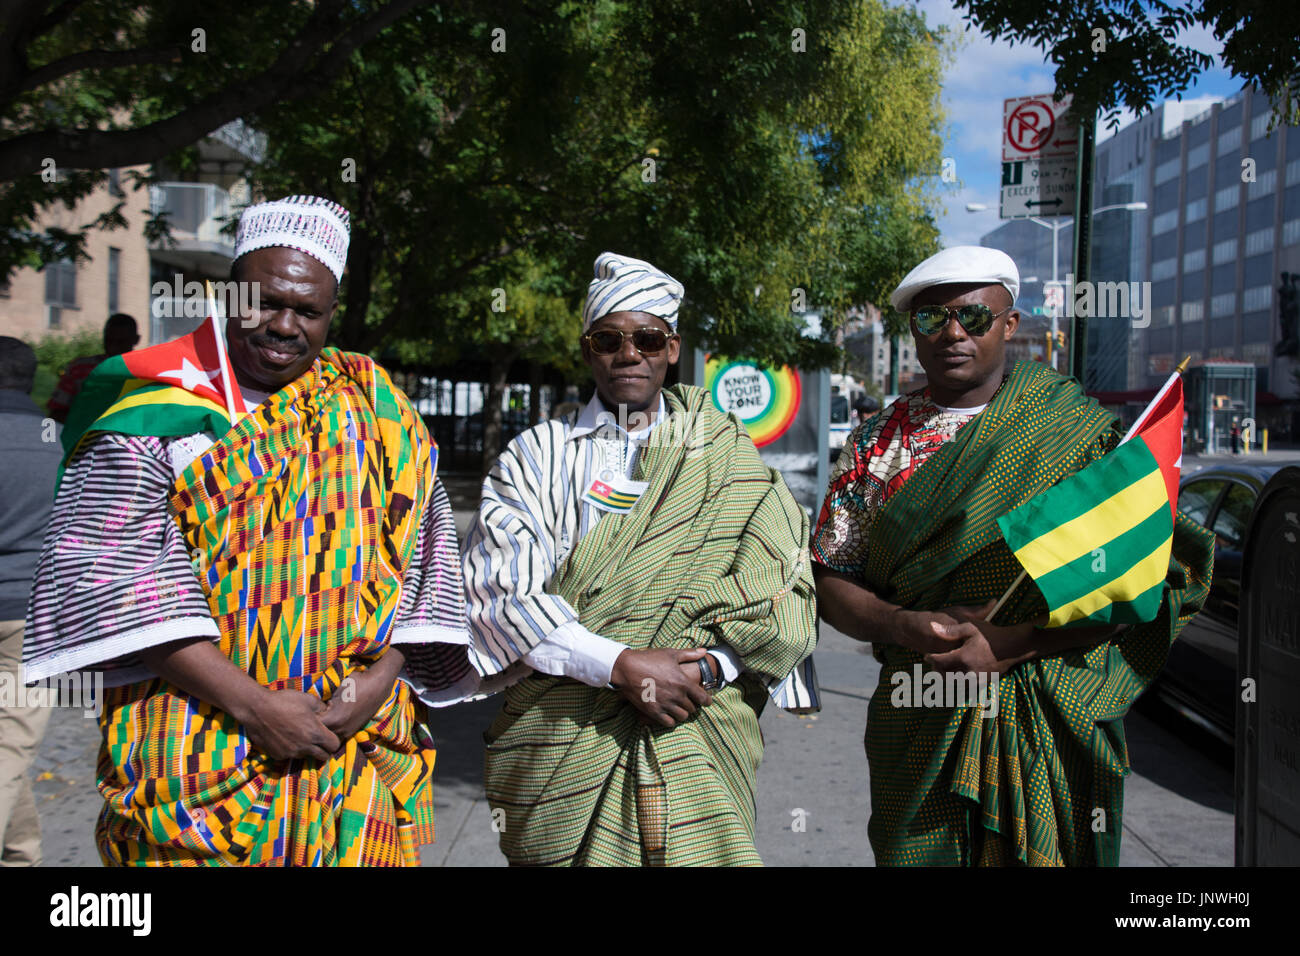 Representatives from across the African diaspora gathered in Harlem for the African Day Parade. - Stock Image